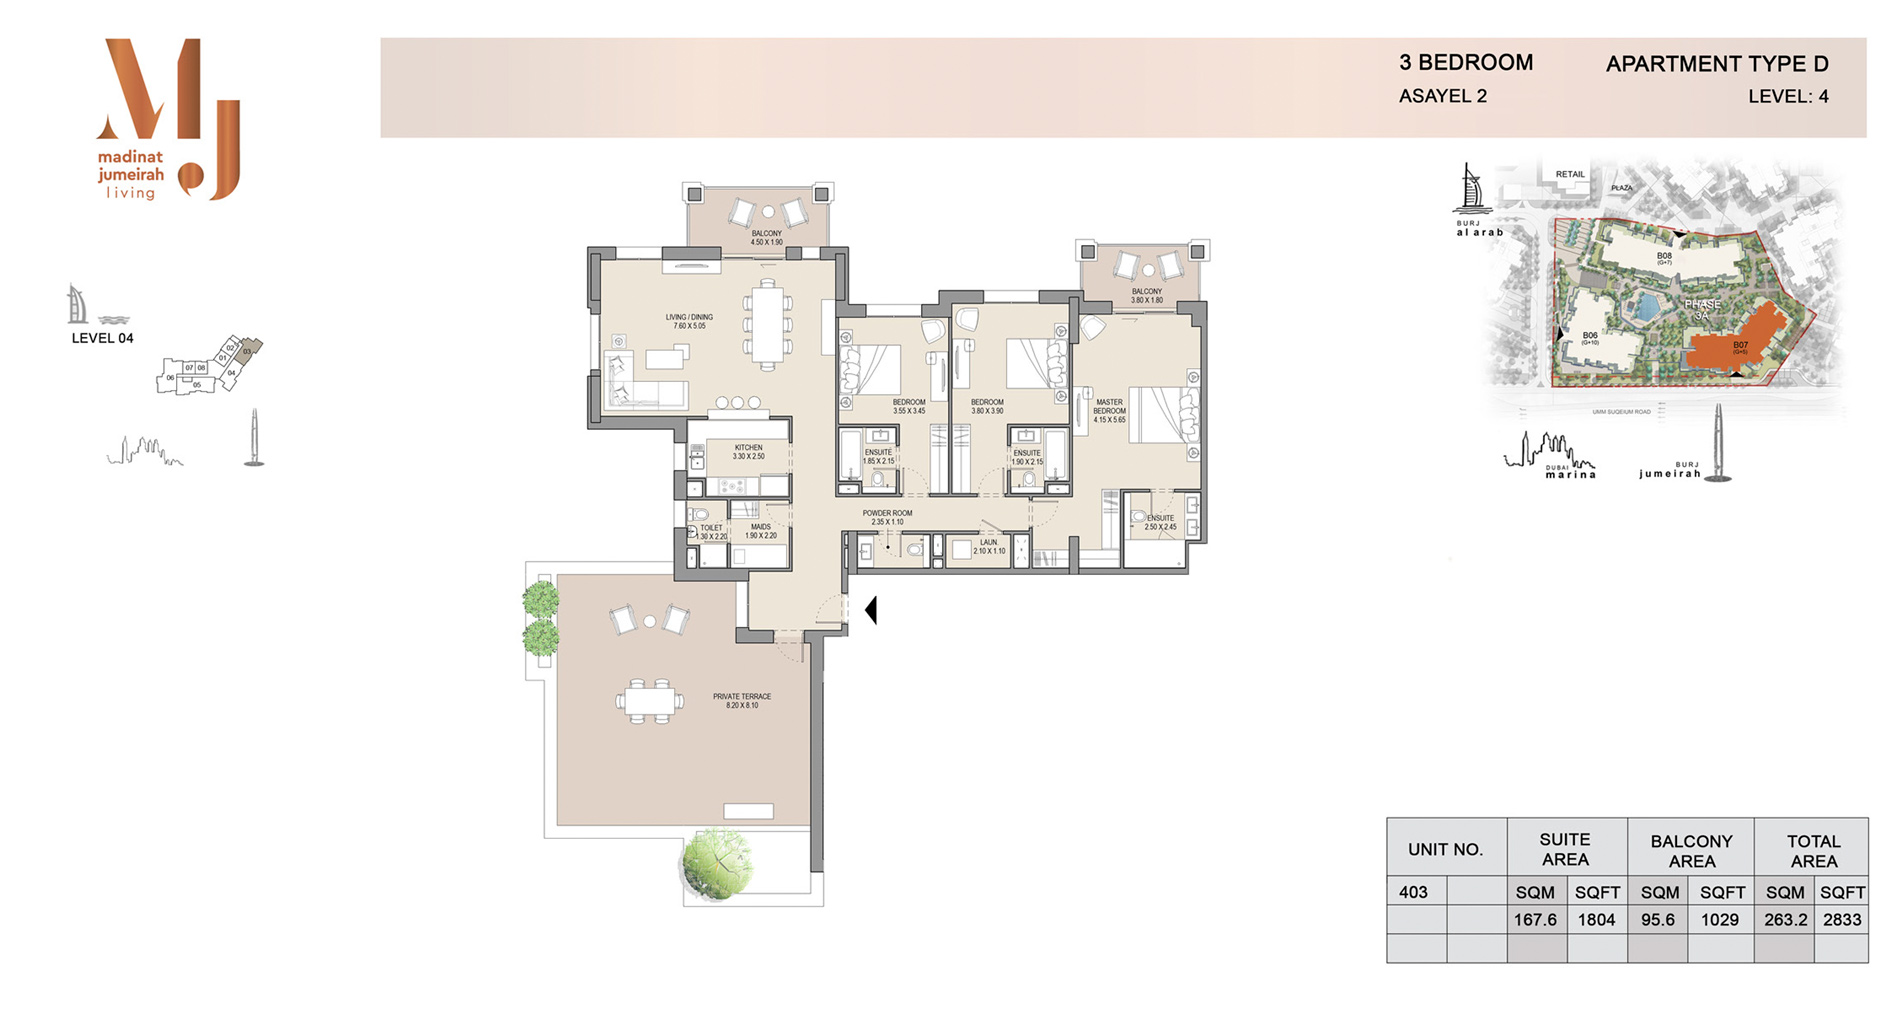 Building 2, 3 Bed Type D Level 4, Size 2833    sq. ft.